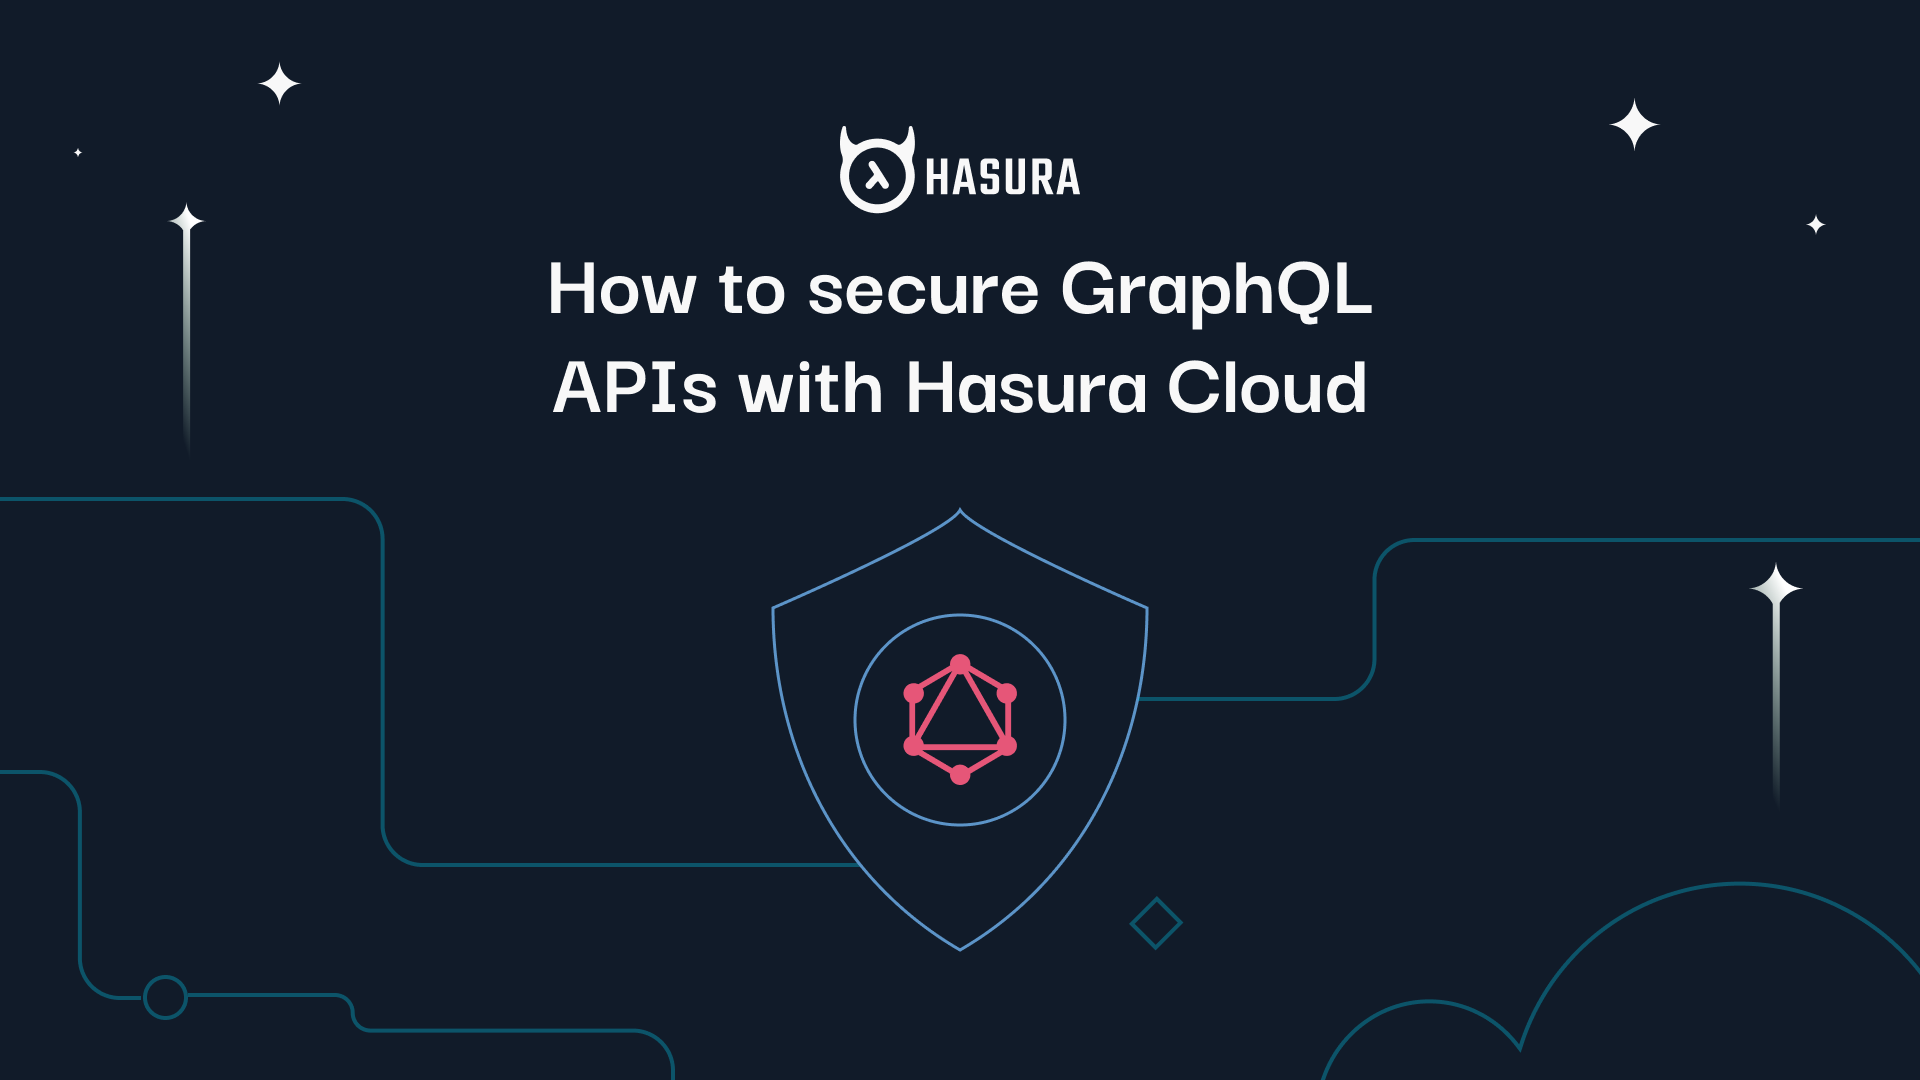 How to secure GraphQL APIs with Hasura Cloud